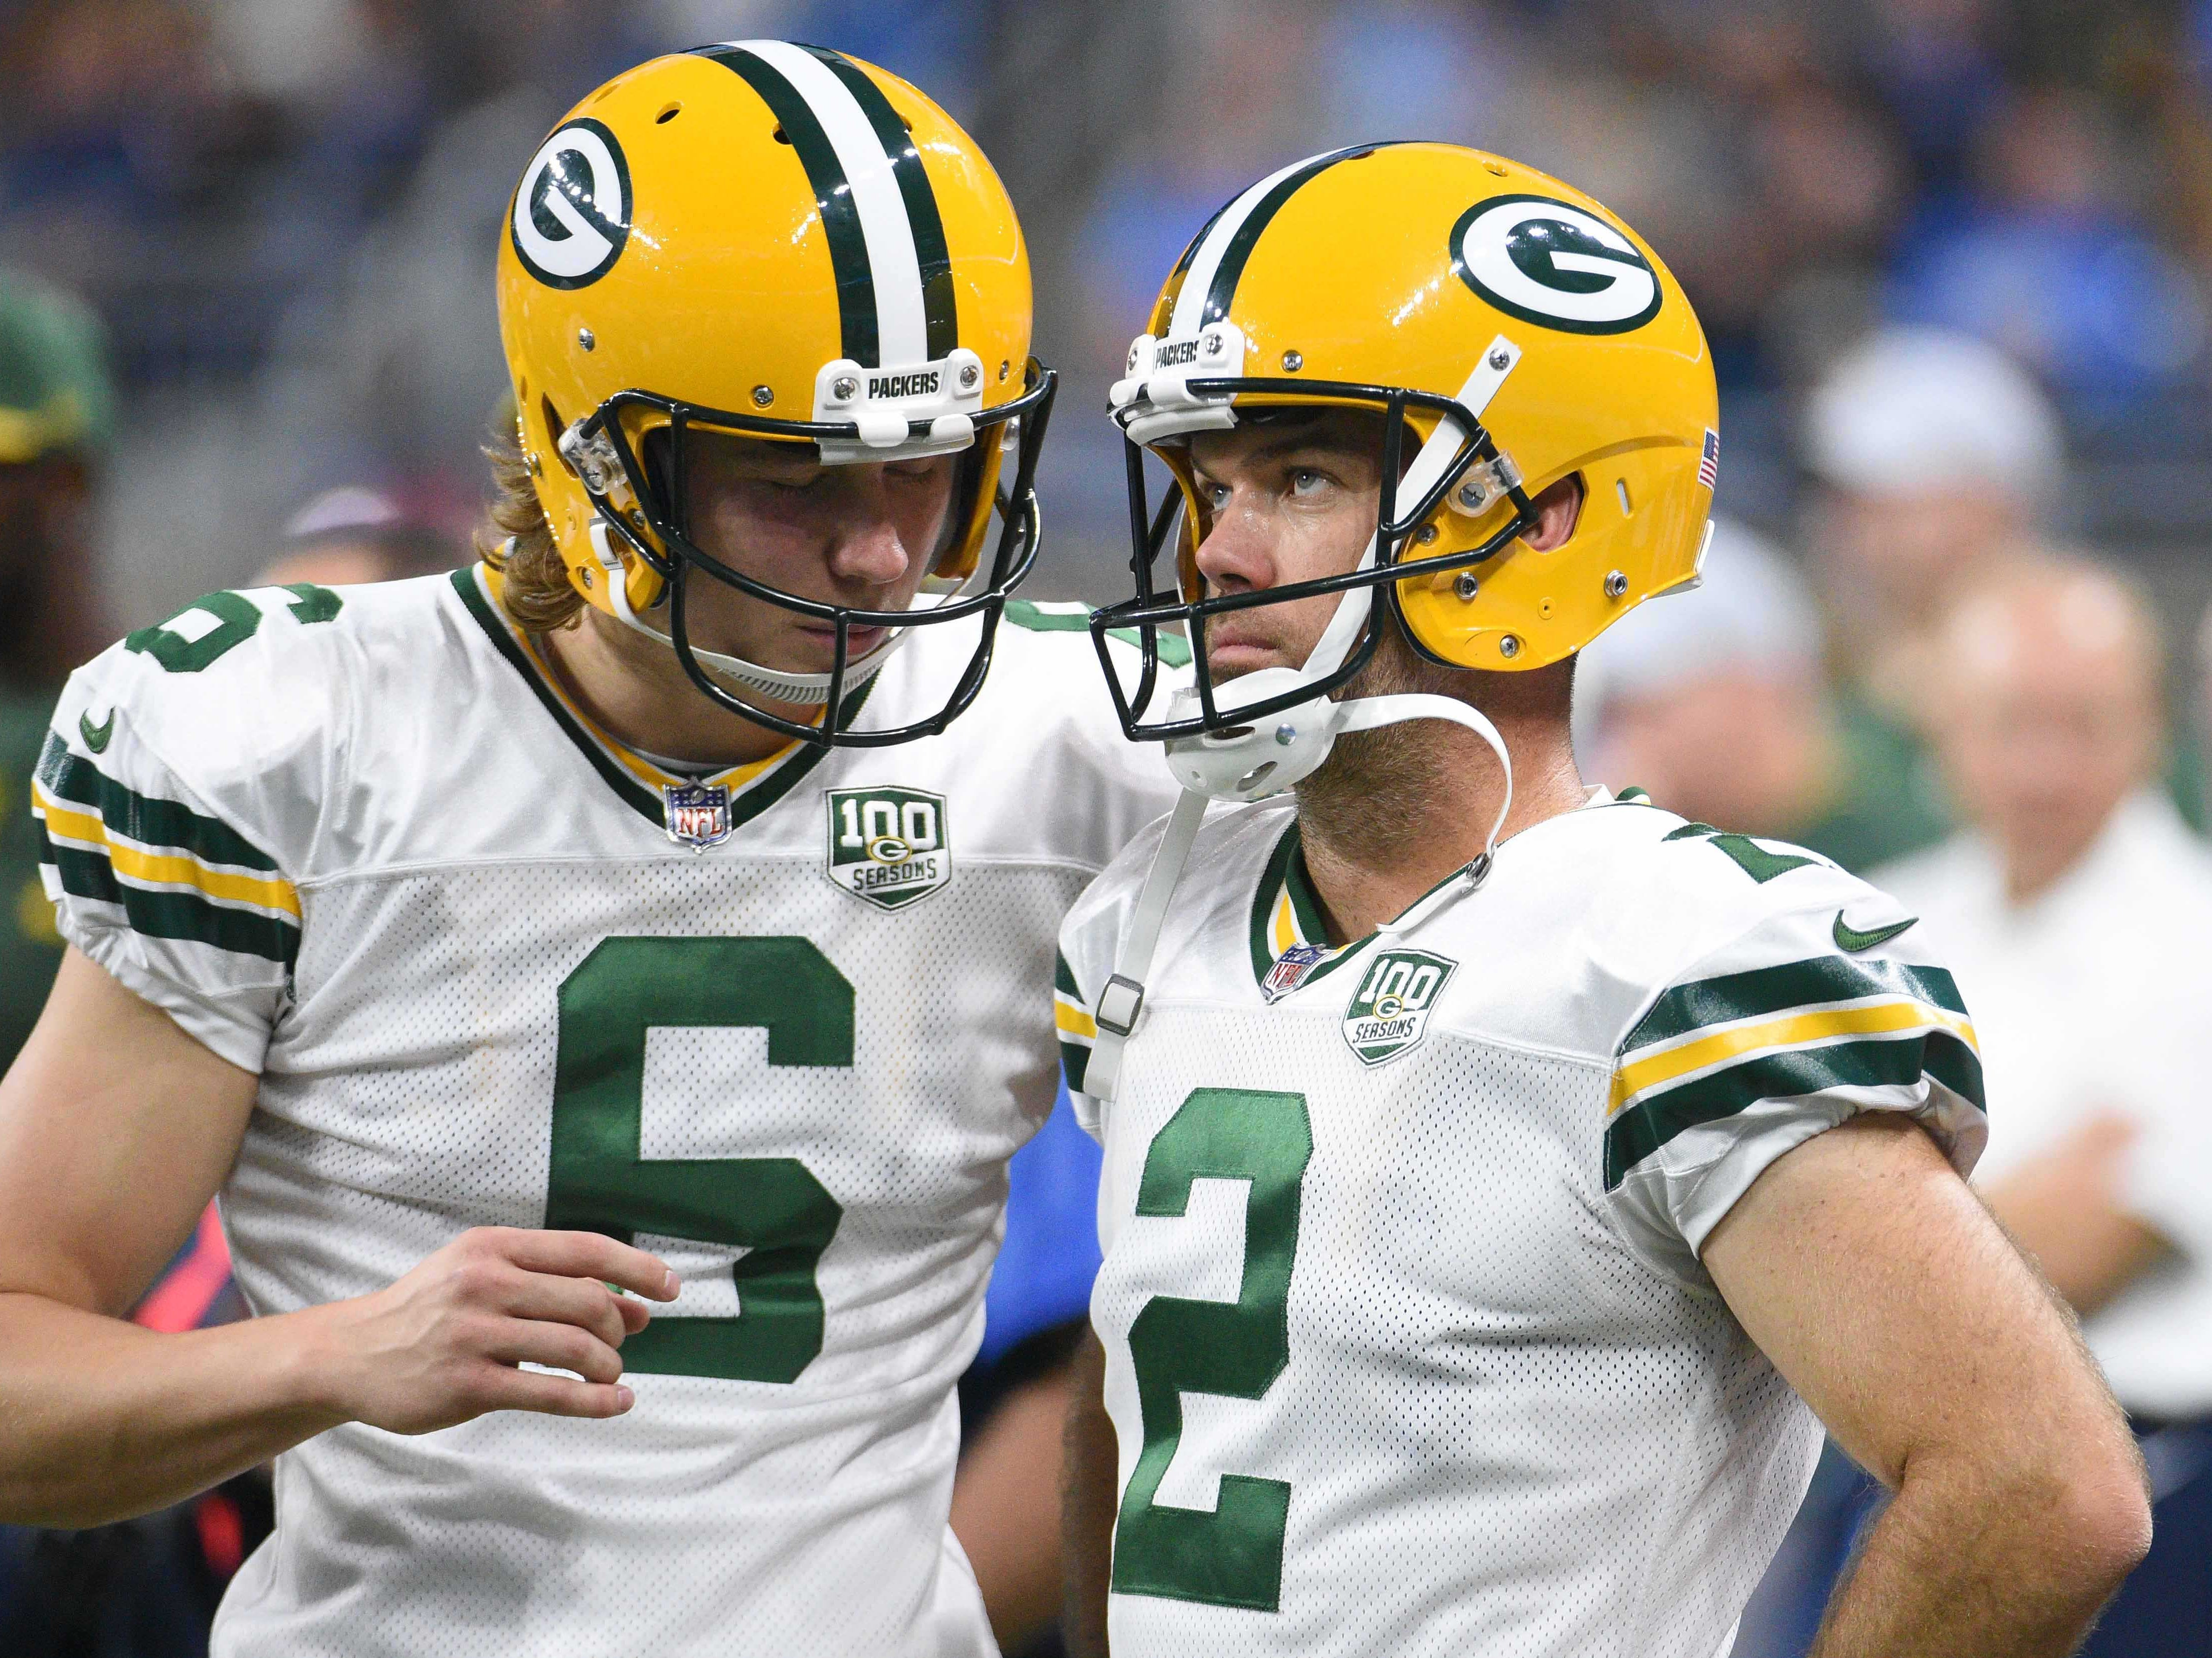 Oct 7, 2018; Detroit, MI, USA; Green Bay Packers kicker Mason Crosby (2) talks to punter JK Scott (6) on the sidelines after a missed field goal during the game against the Detroit Lions at Ford Field. Mandatory Credit: Tim Fuller-USA TODAY Sports